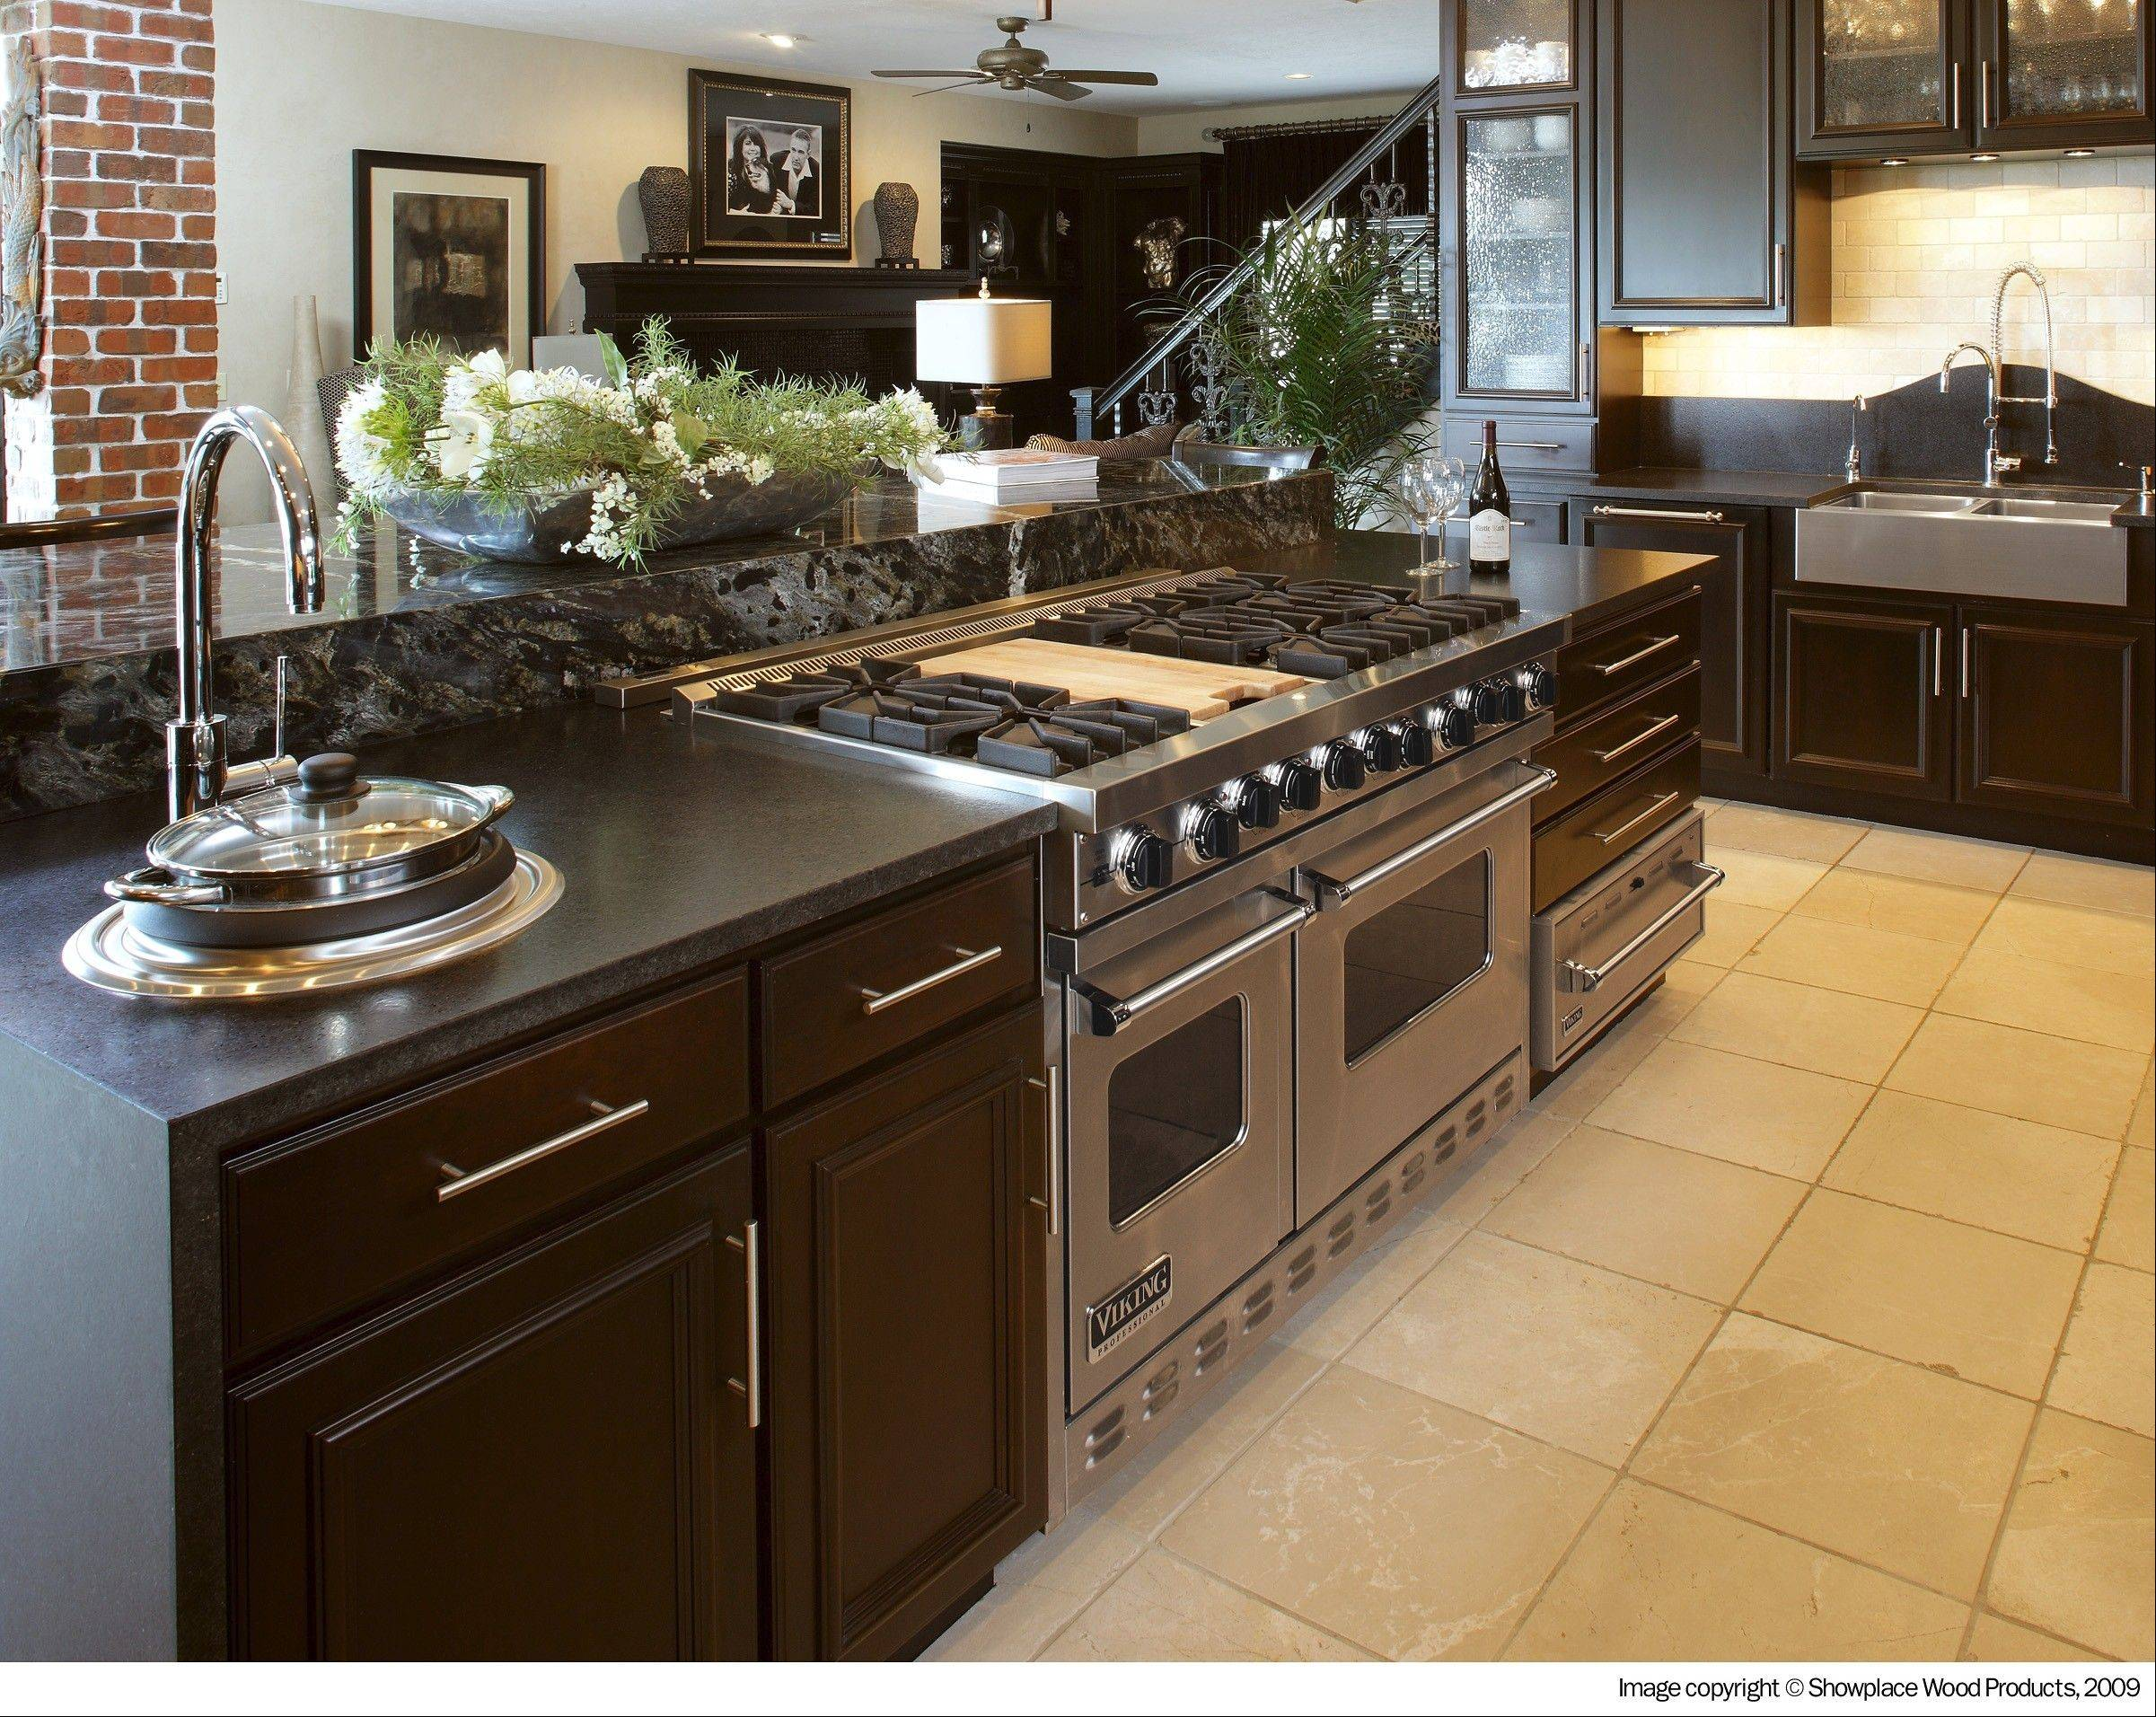 DreamMaker Kitchen and Bath has a 1,500-square-foot showroom in Schaumburg.